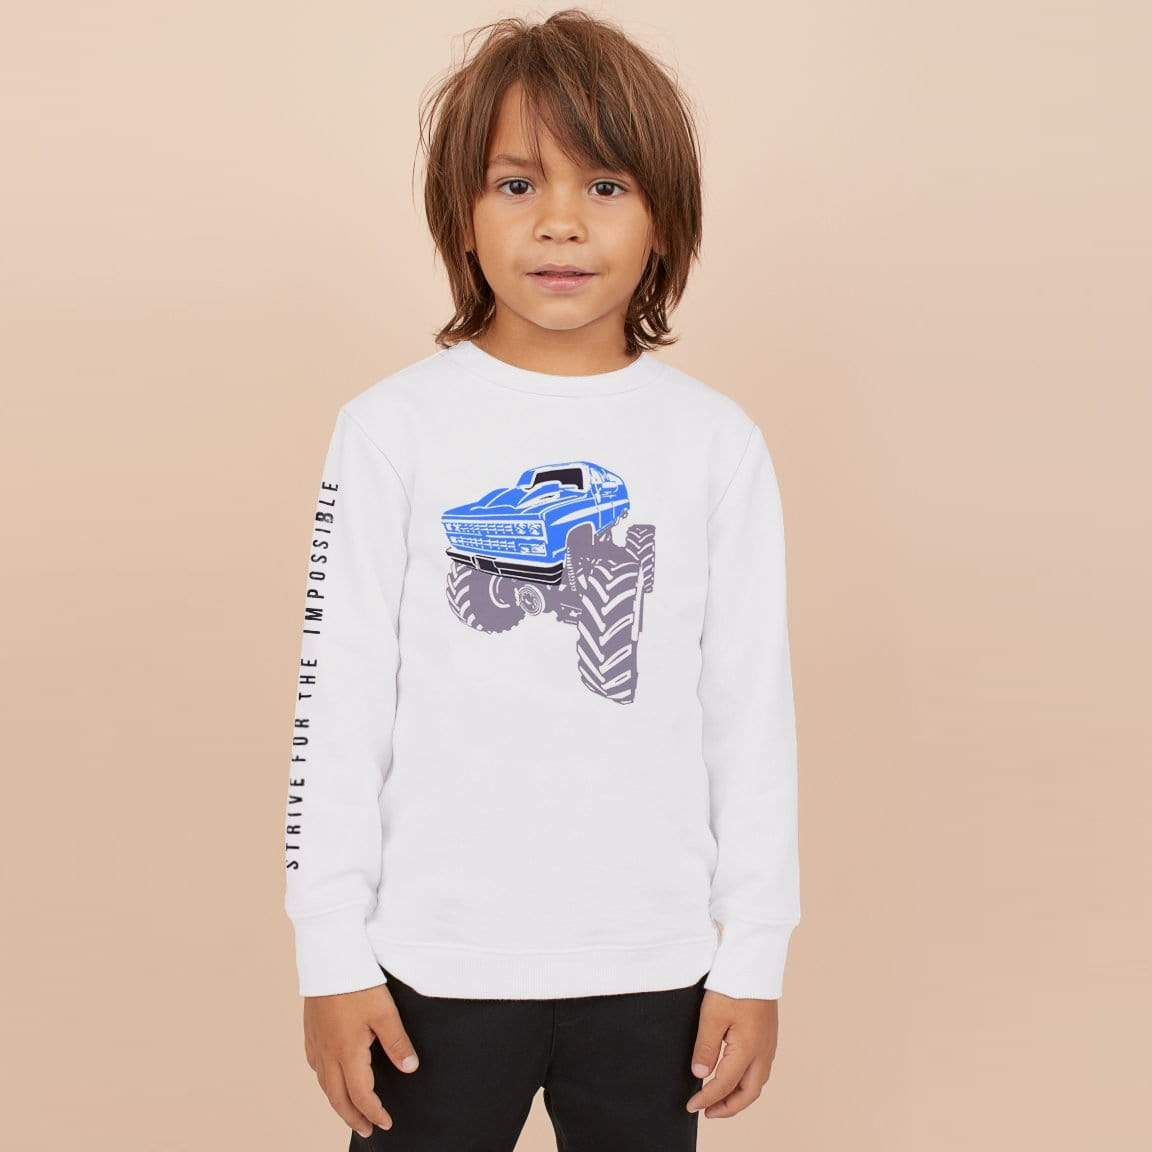 Stone Harbor Kid's Sweatshirt White / 5-6 Years Boy's Stone Harbor Strive Crew Neck Sweatshirt